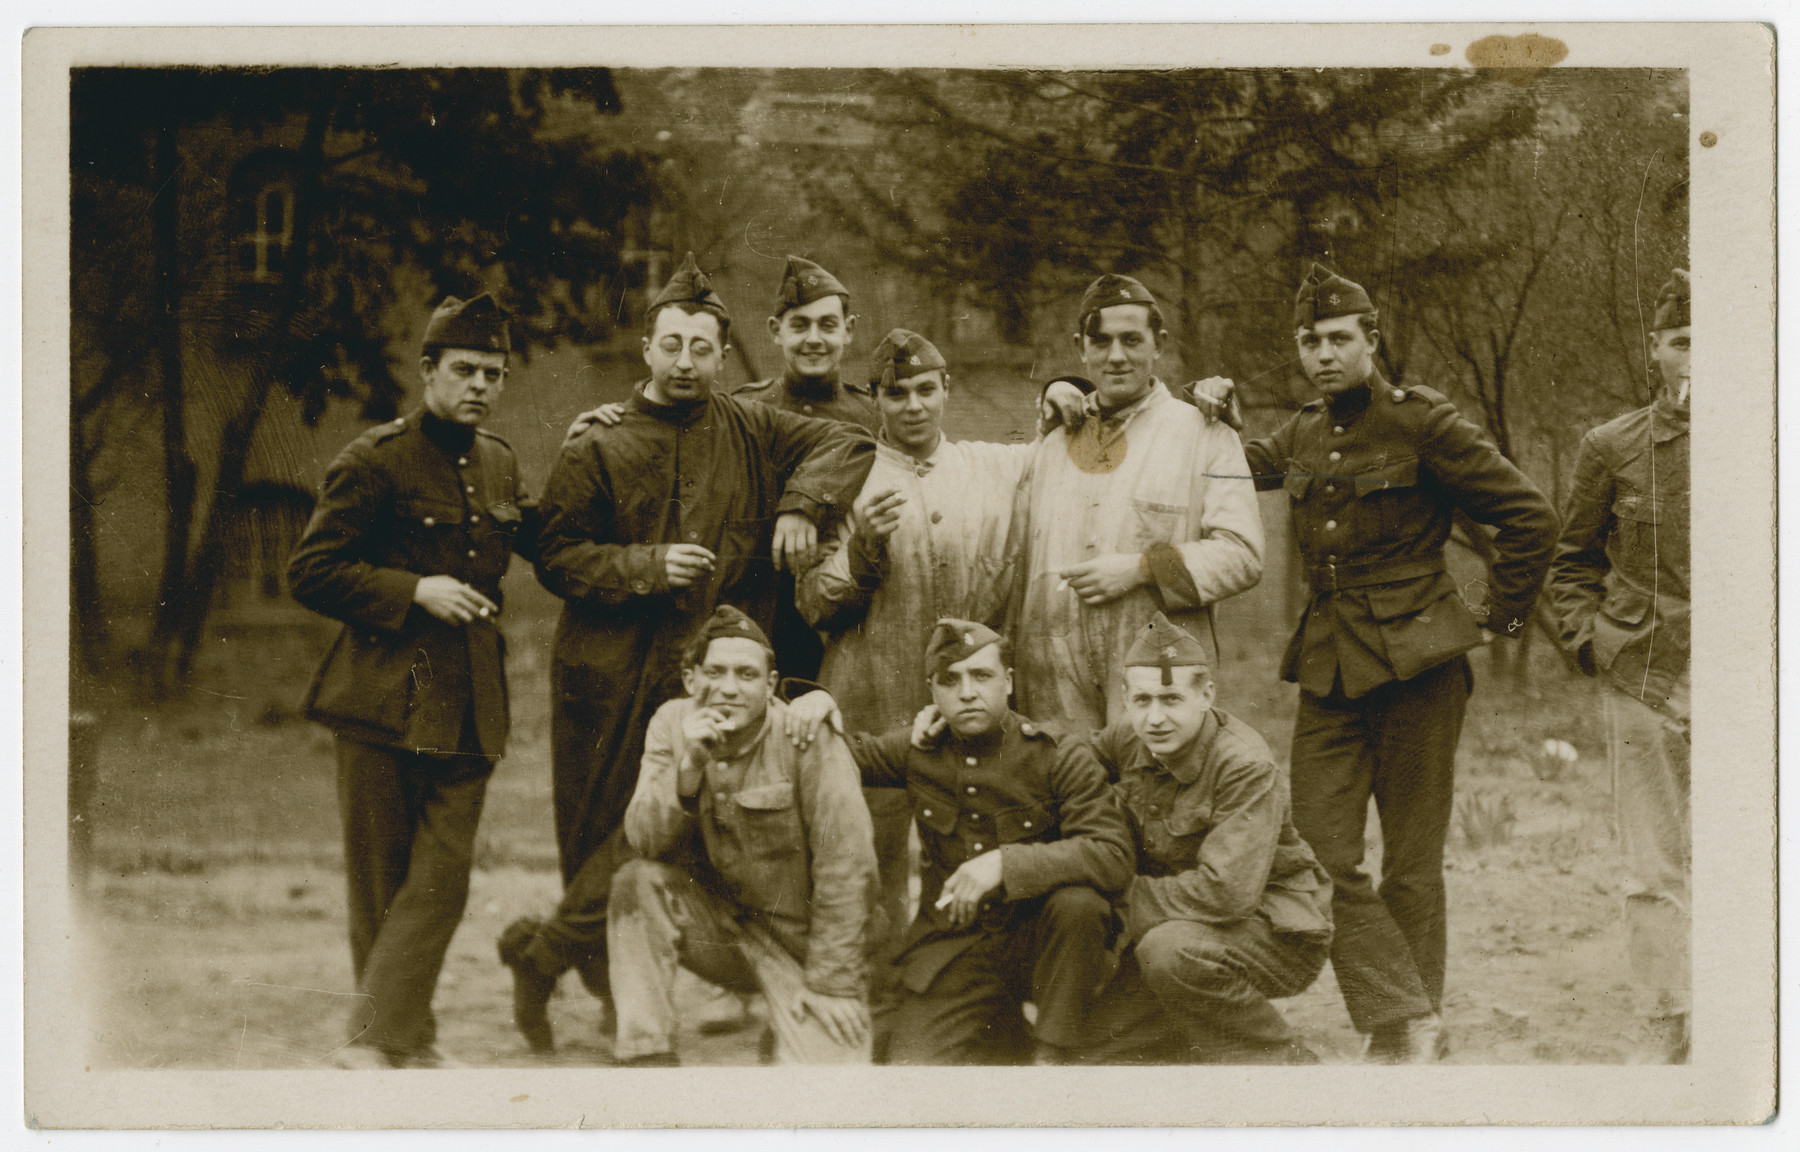 Group portrait of Belgian POWs in Stalag 10C.